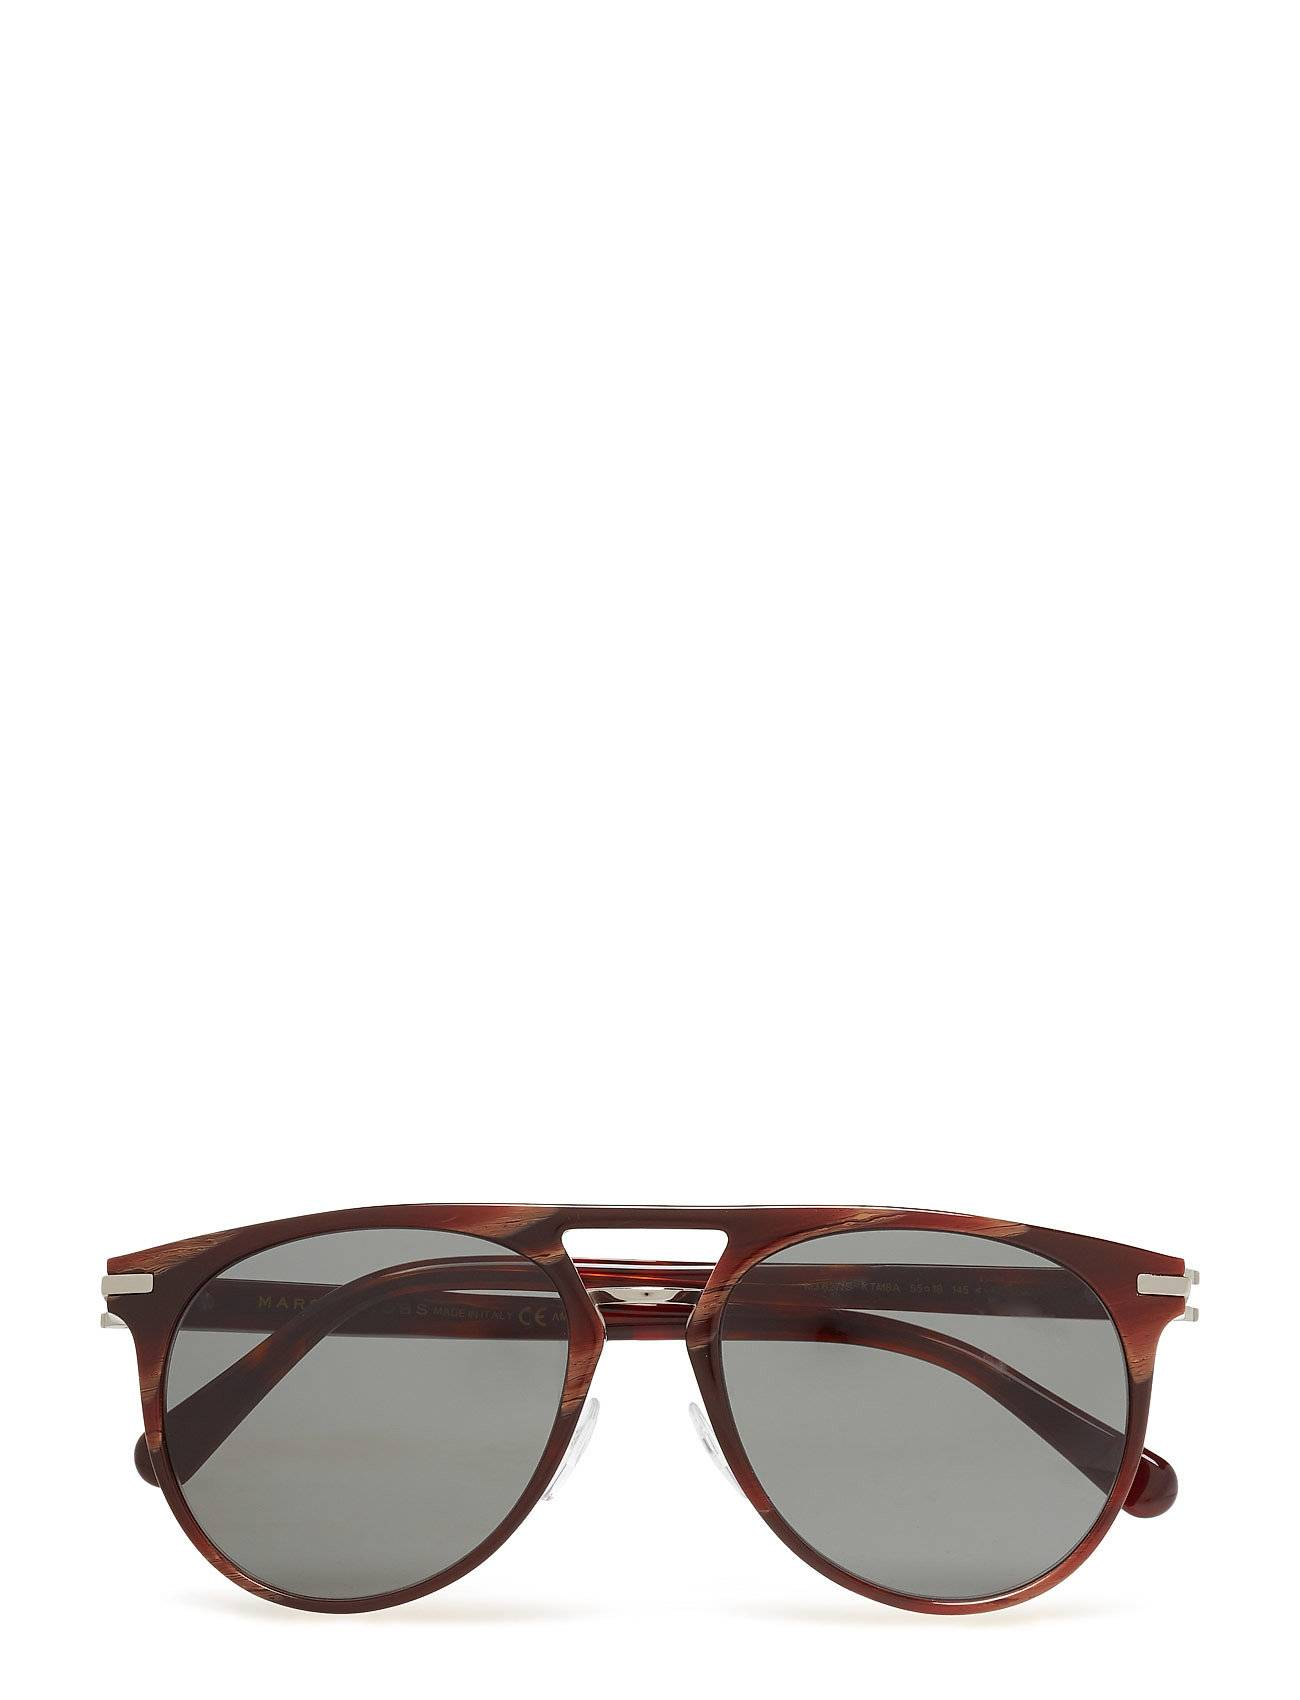 Image of Marc Jacobs Sunglasses Mj 627/S Pilottilasit Aurinkolasit Punainen Marc Jacobs Sunglasses